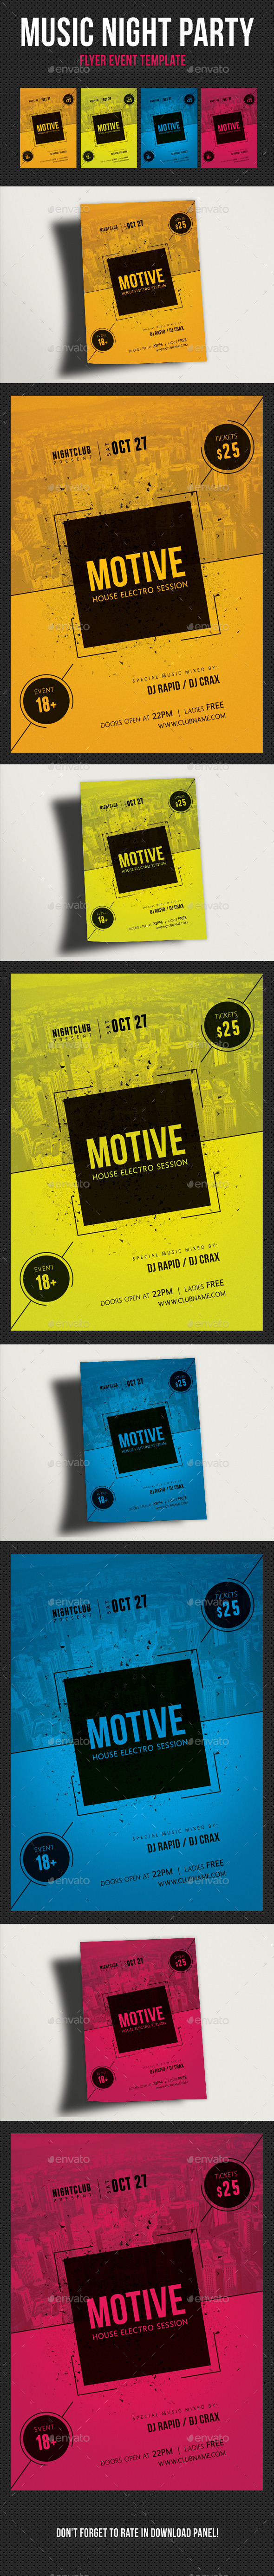 Music Night Party Flyer Template 22 - Clubs & Parties Events